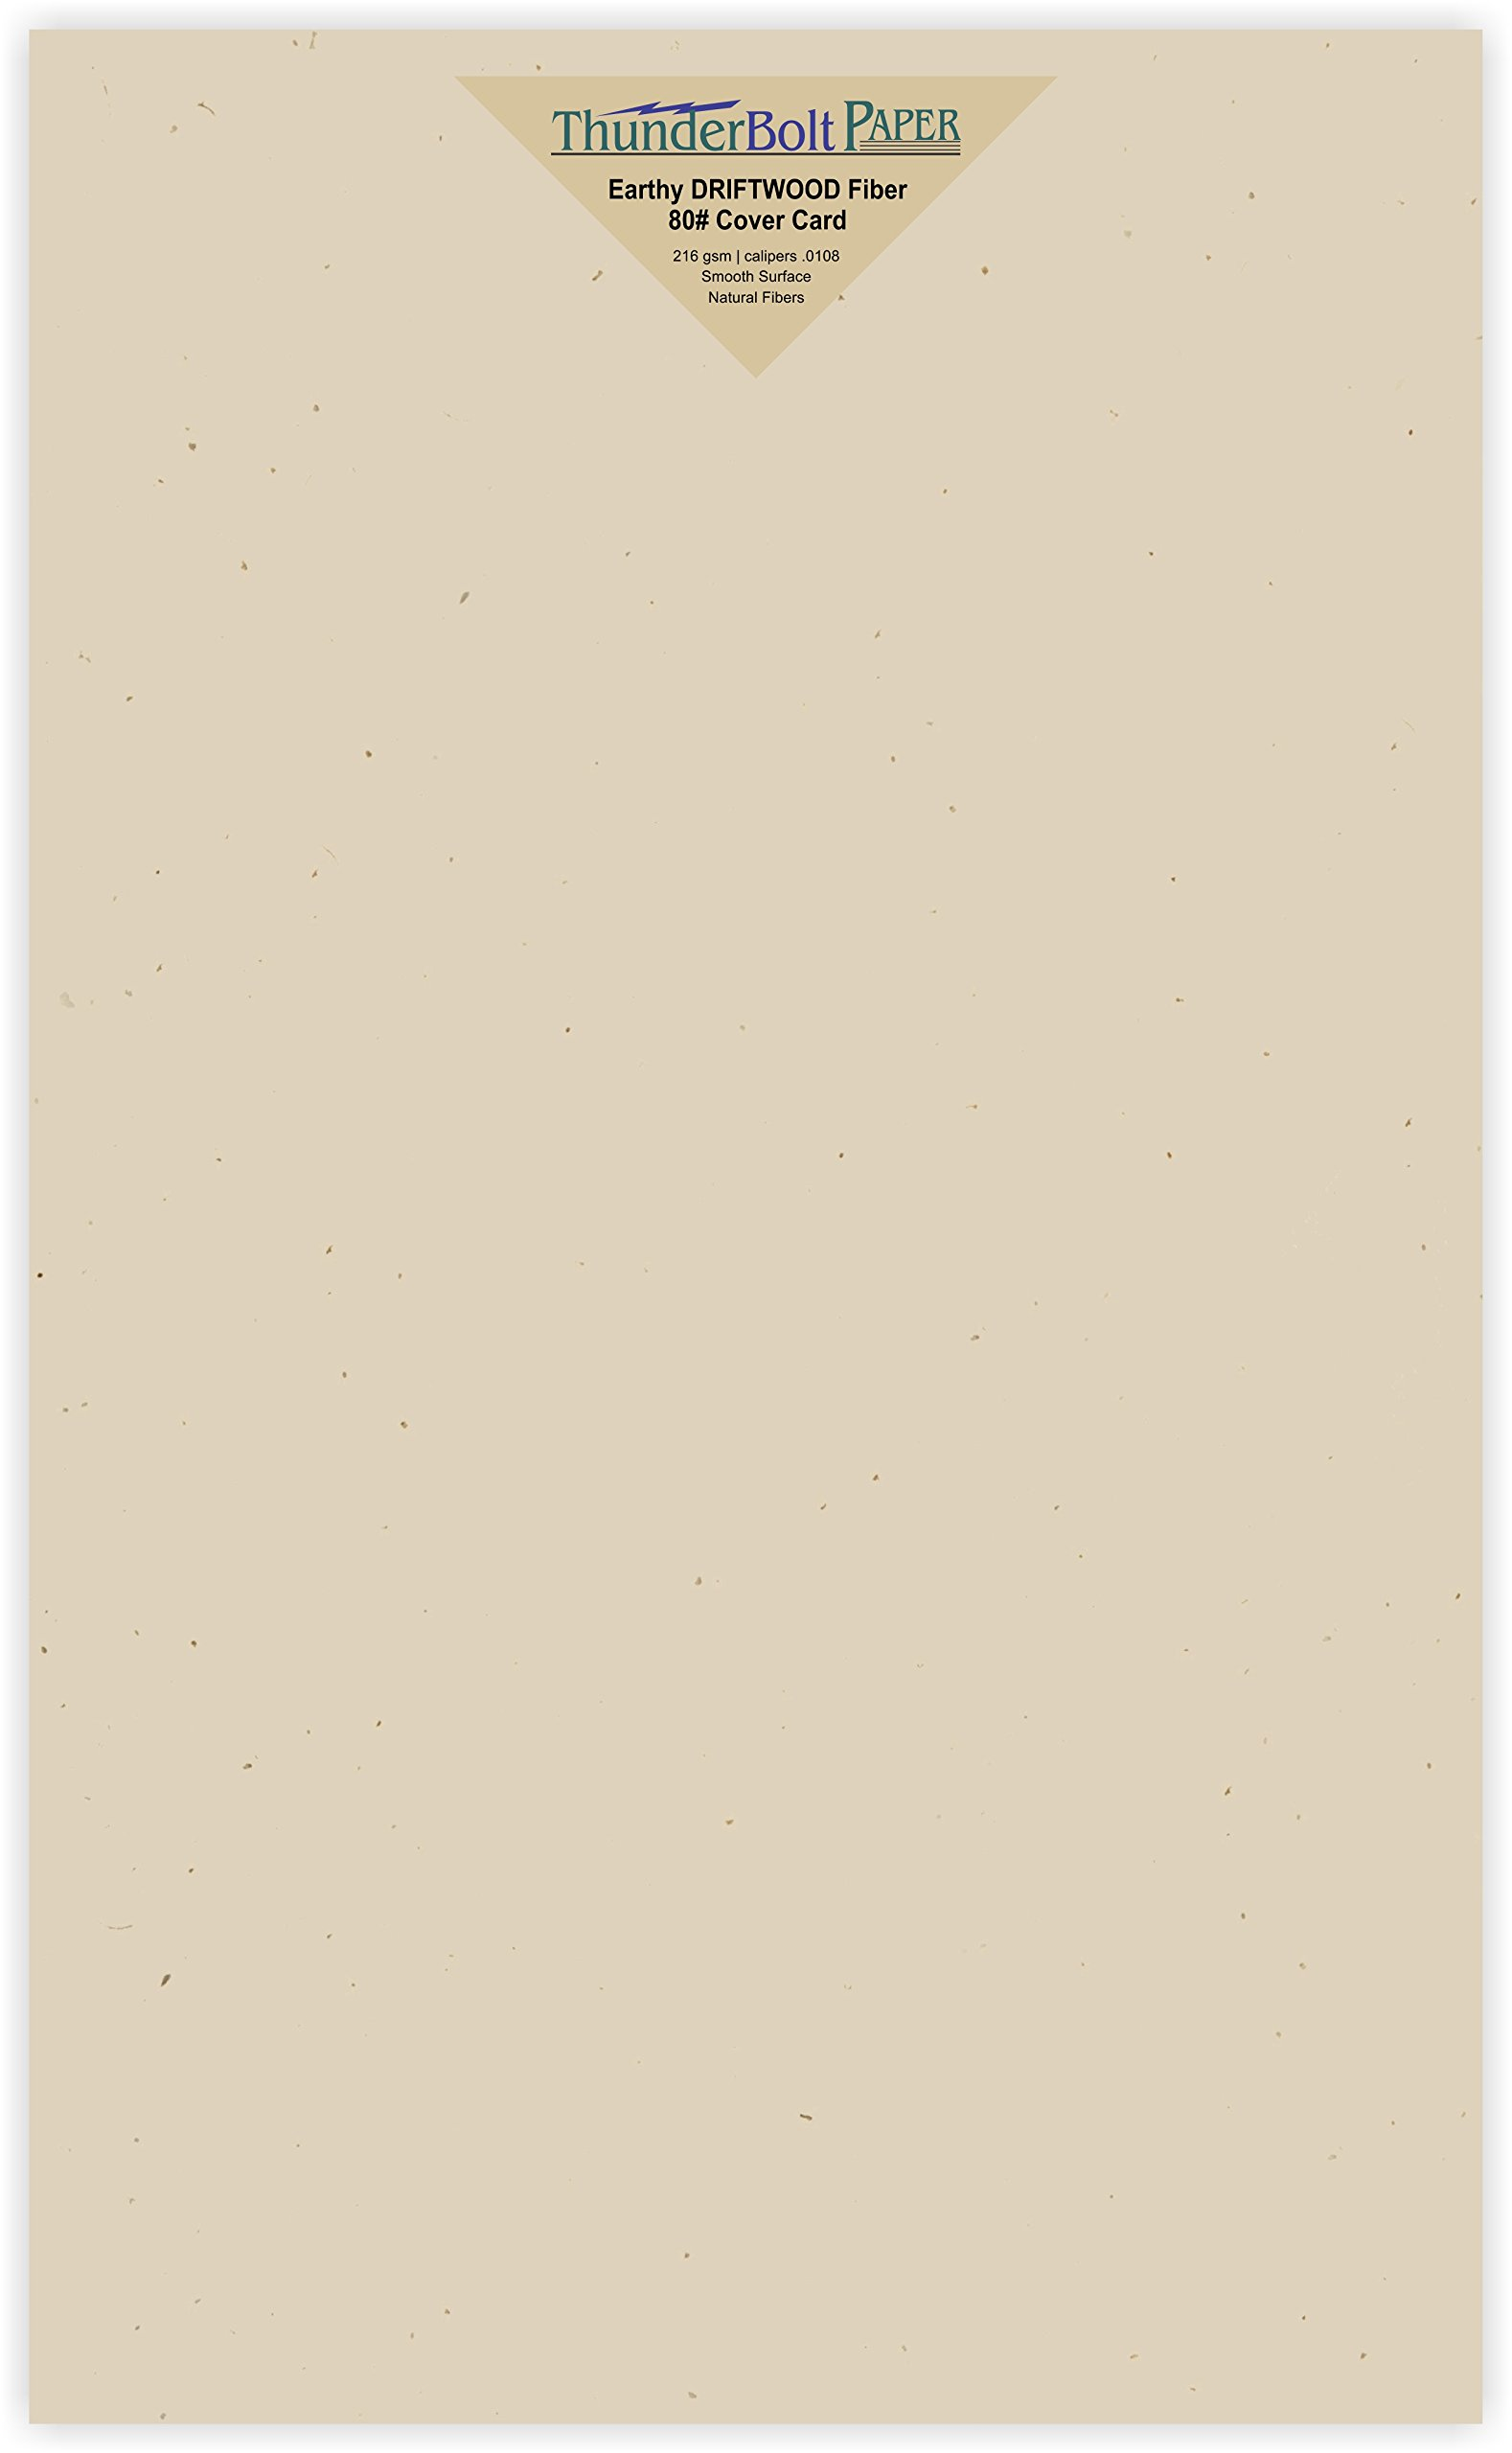 250 Earthy Driftwood Tan Fiber 80# Cover Paper Sheets - 8.5'' X 14'' (8.5X14 Inches) Legal|Menu Size - Light Tan Color with Natural Fibers - Smooth Finish